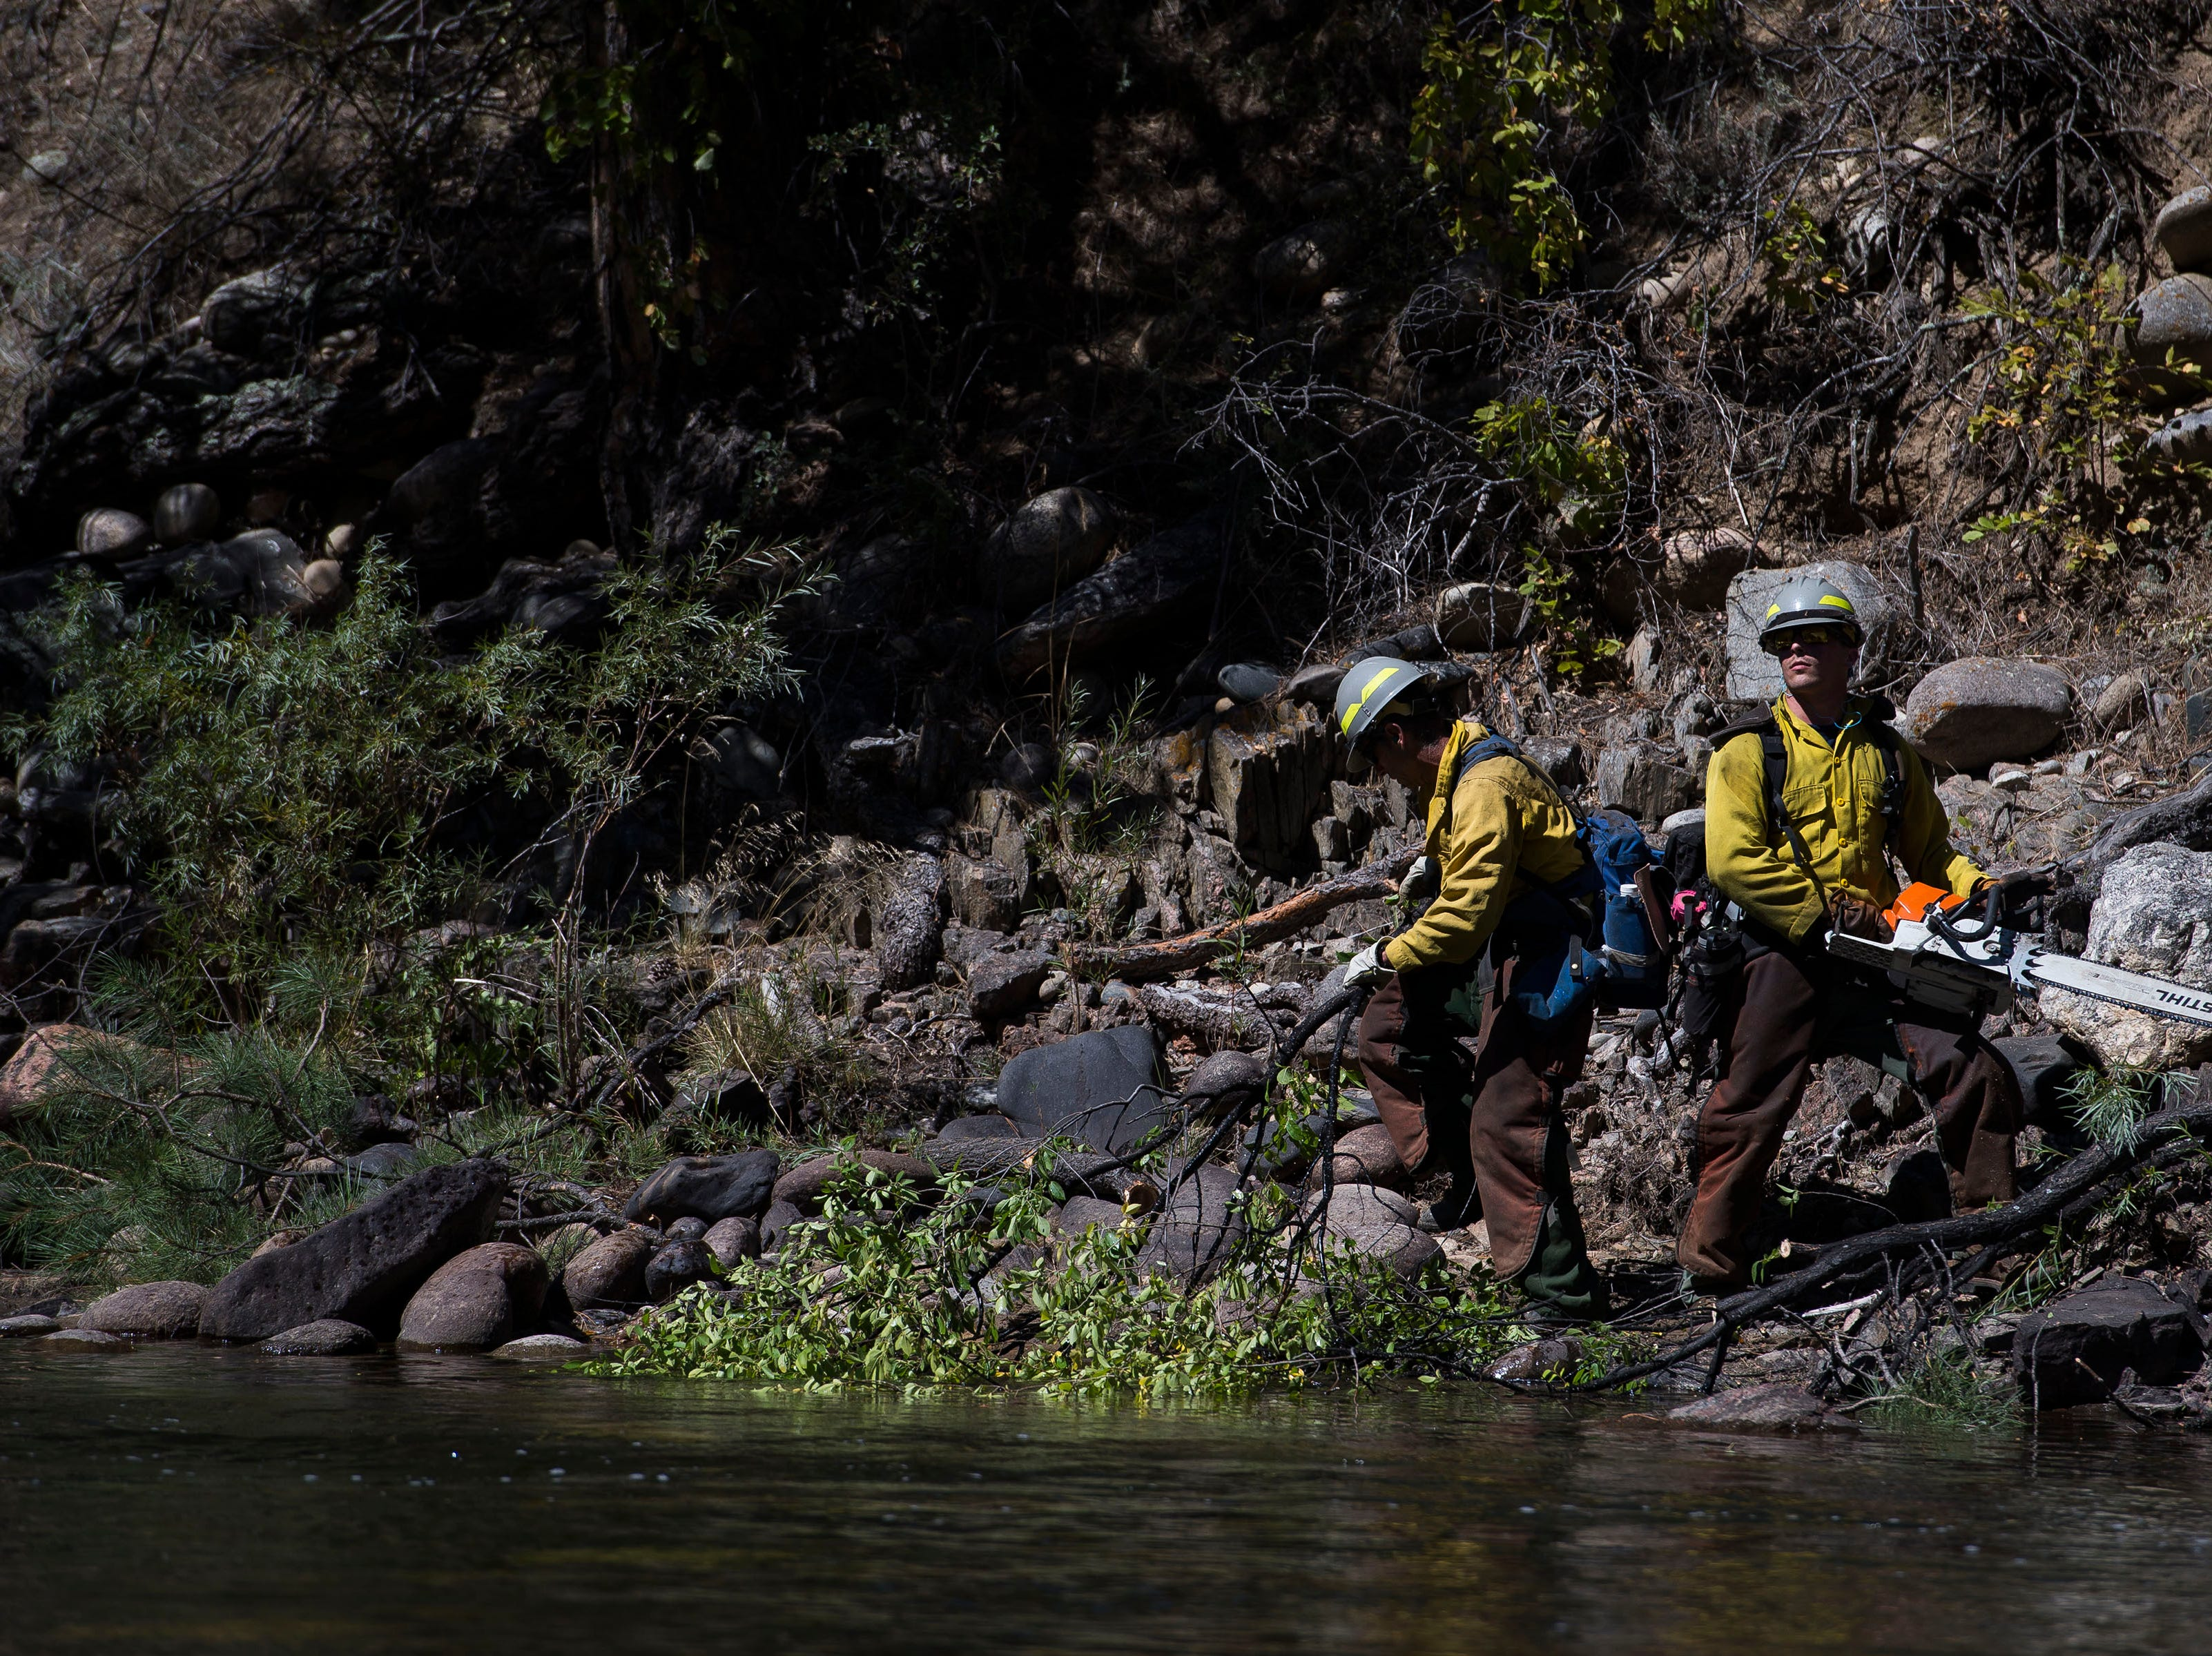 Backcountry firefighters cut down trees near the banks of the Cache la Poudre River on Wednesday, Sept. 12, 2018, in the Poudre Canyon, near Seaman Reservoir in Larimer County, Colo.